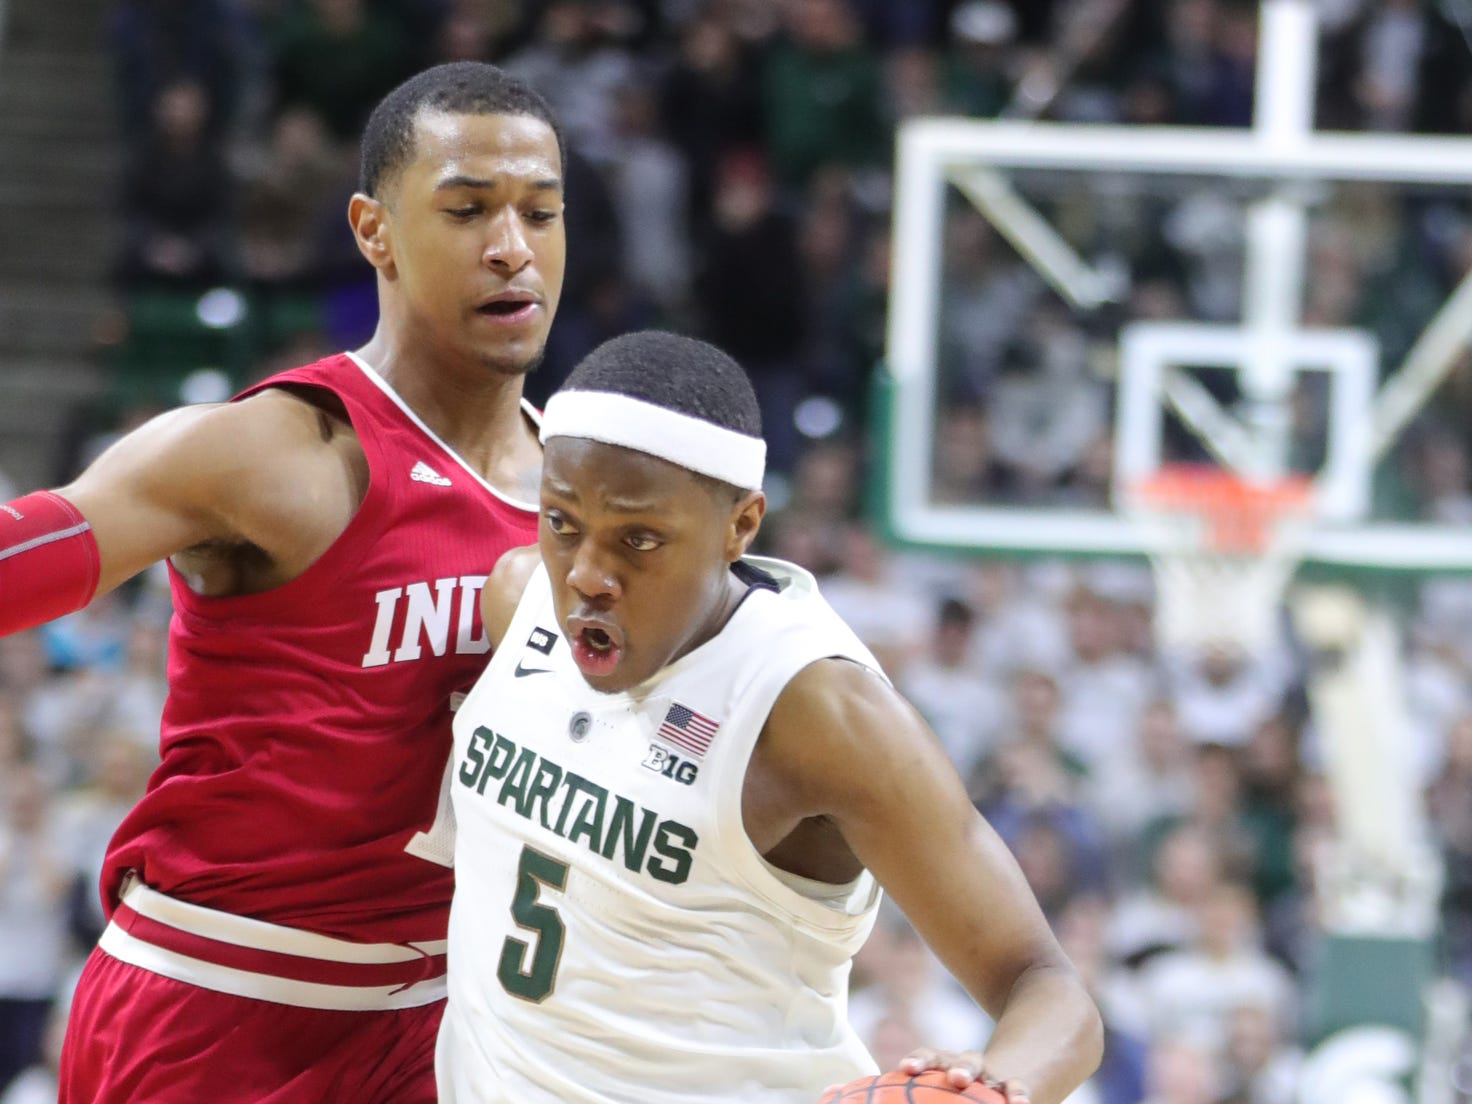 Michigan State's Cassius Winston drives against Indiana's Devonte Green during overtime of the 79-75 loss to Indiana on Feb. 2, 2019, in East Lansing.